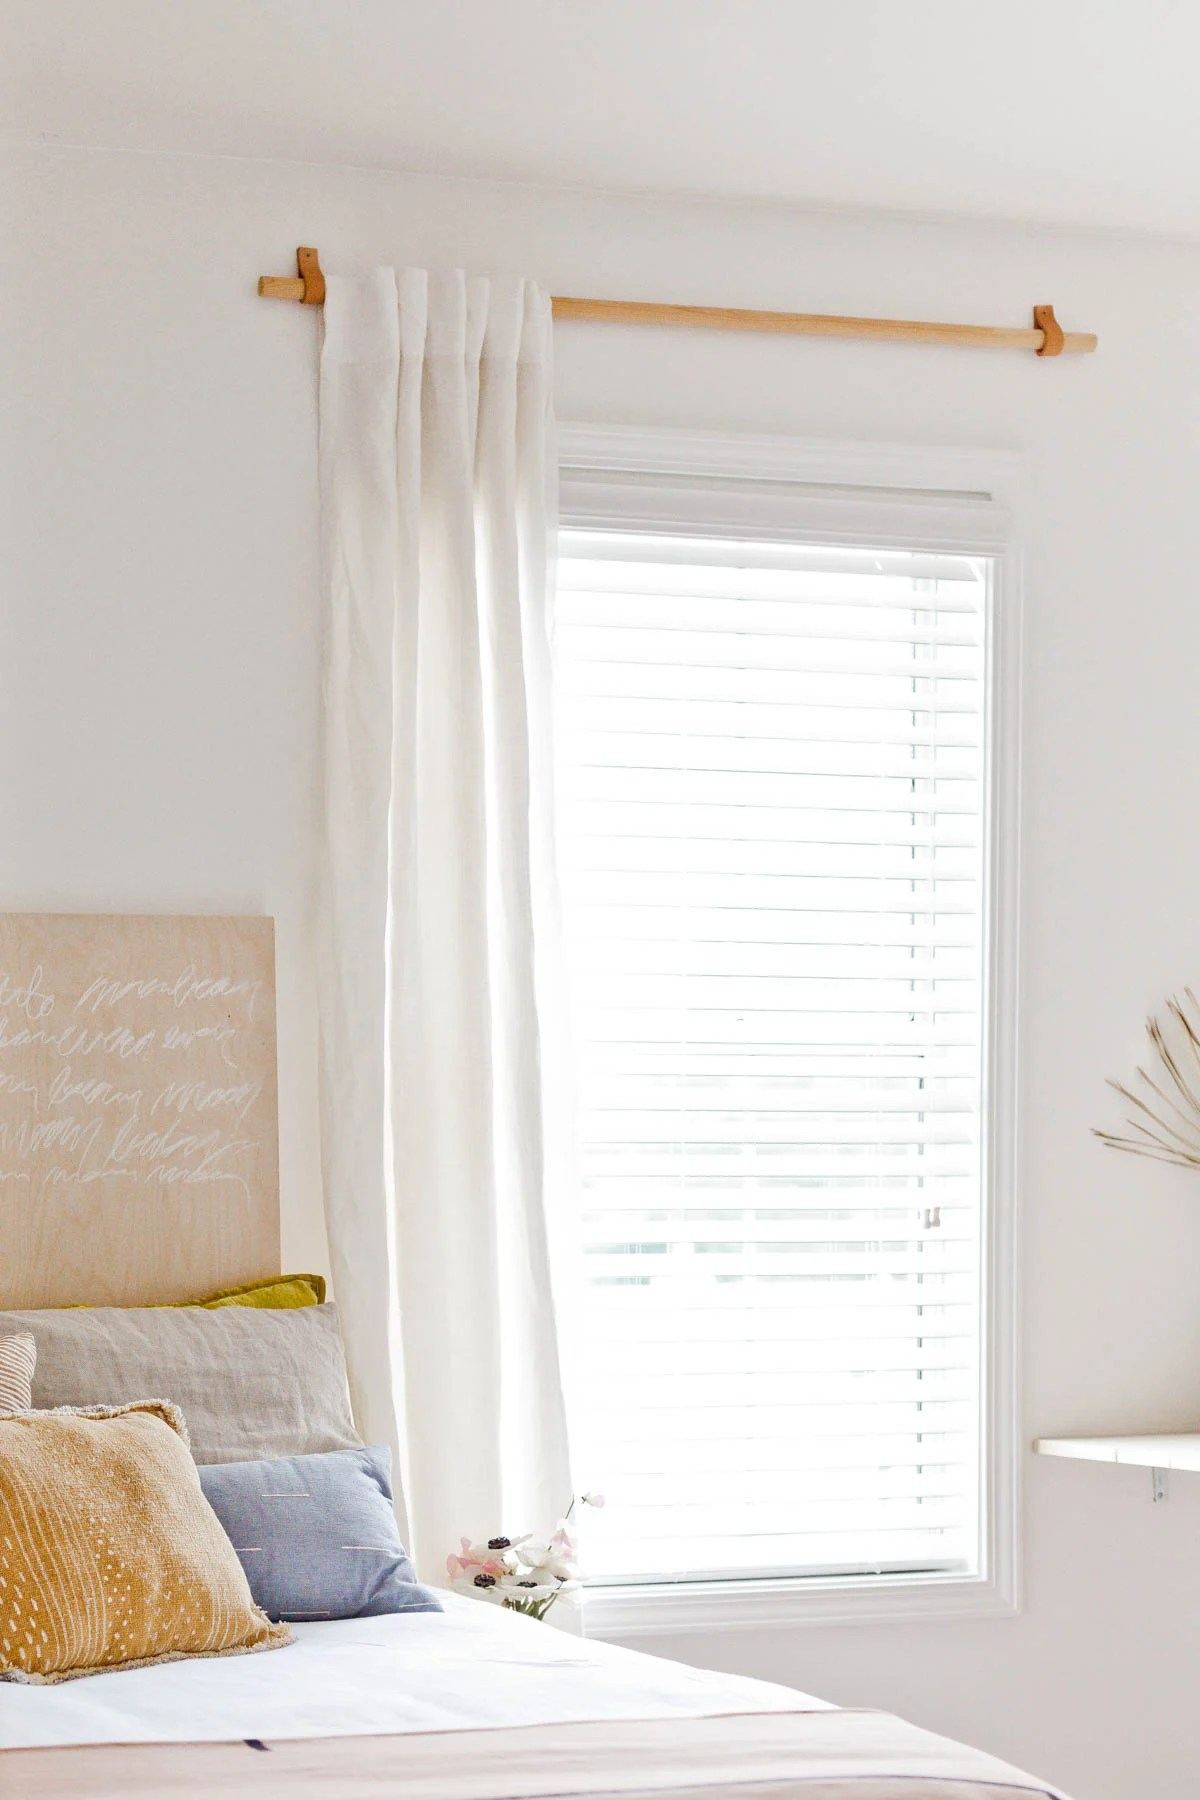 How To Make A Simple Curtain Rod For Less Than 10 Paper